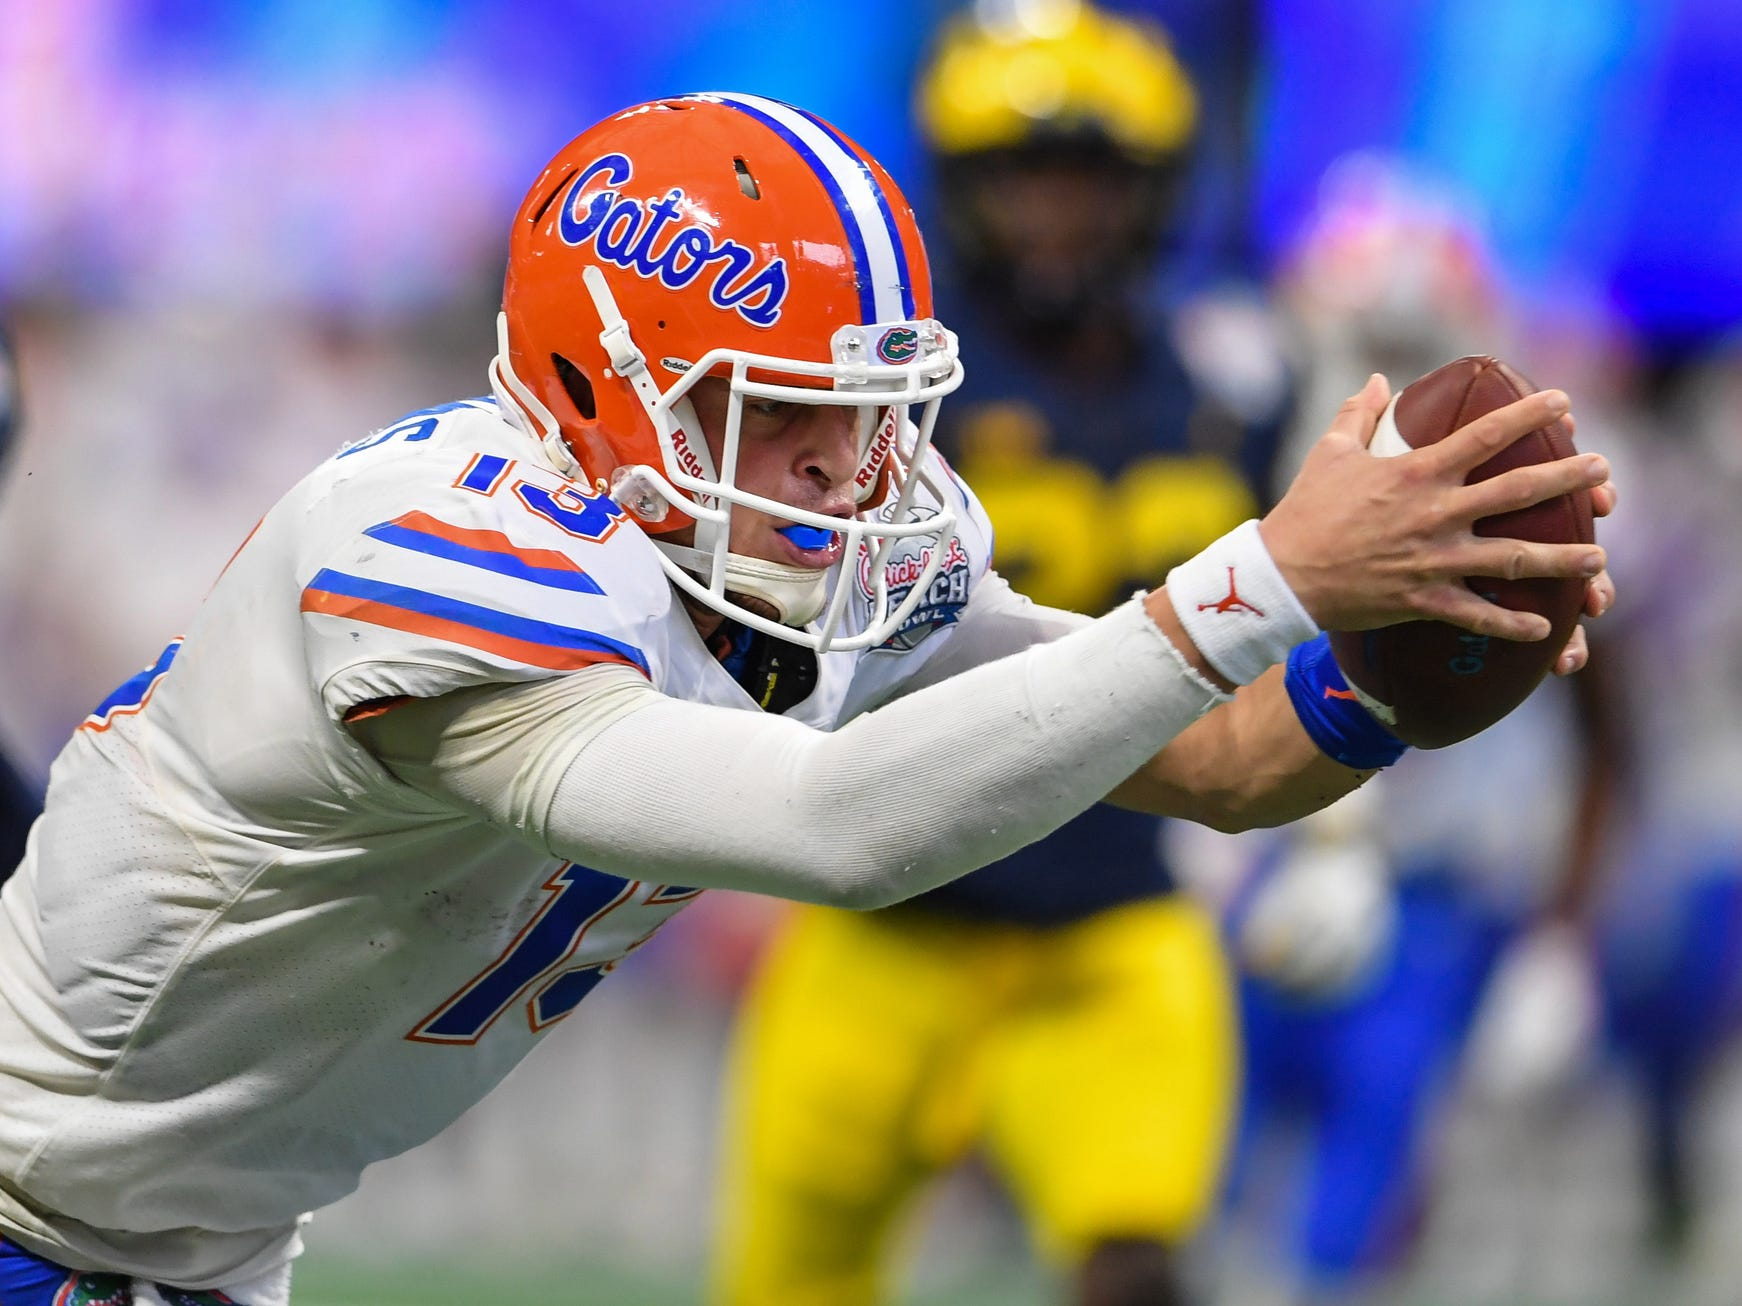 Florida Gators quarterback Feleipe Franks dives for a touchdown against Michigan during the first half during the Peach Bowl on Saturday, Dec. 29, 2018, in Atlanta.